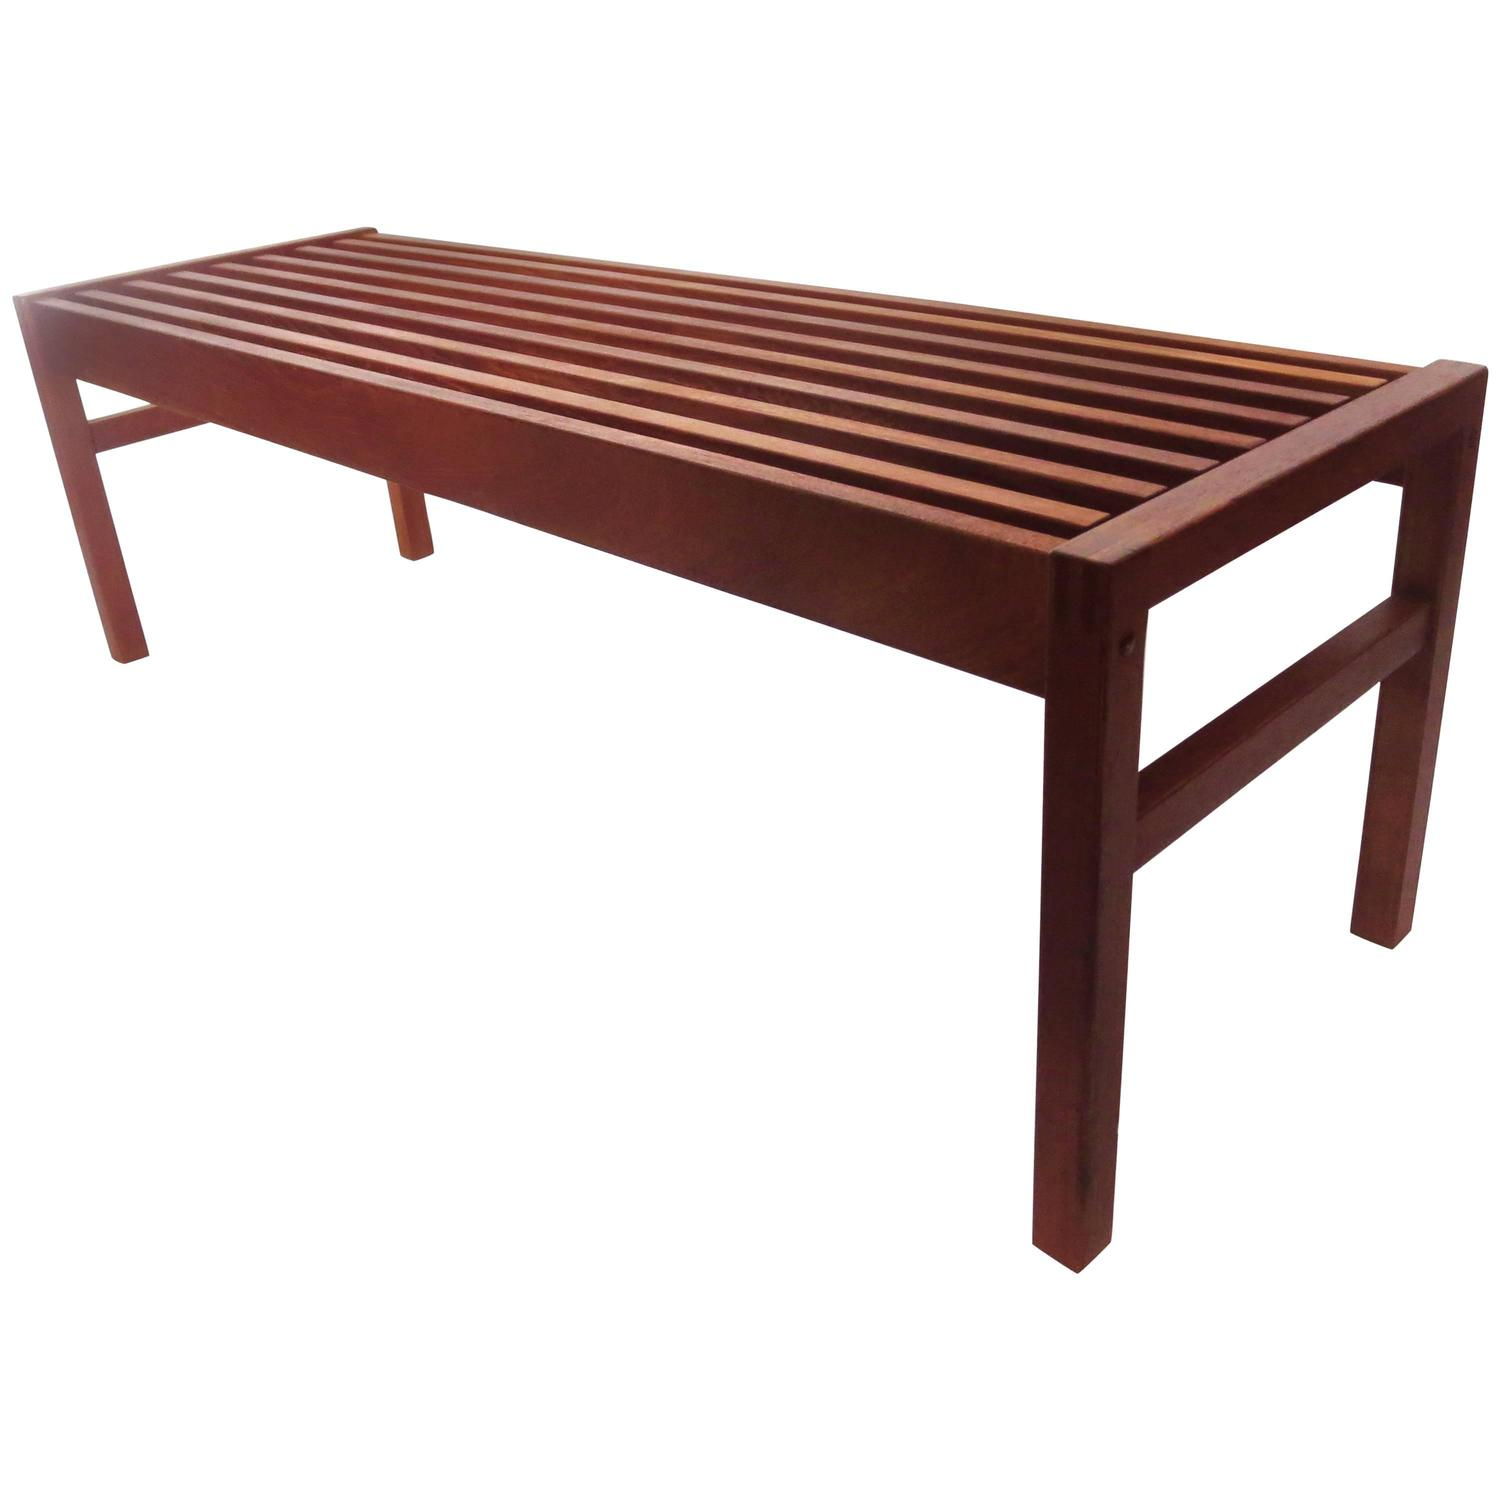 1950s Solid Teak Danish Modern Bench Coffee Table At 1stdibs